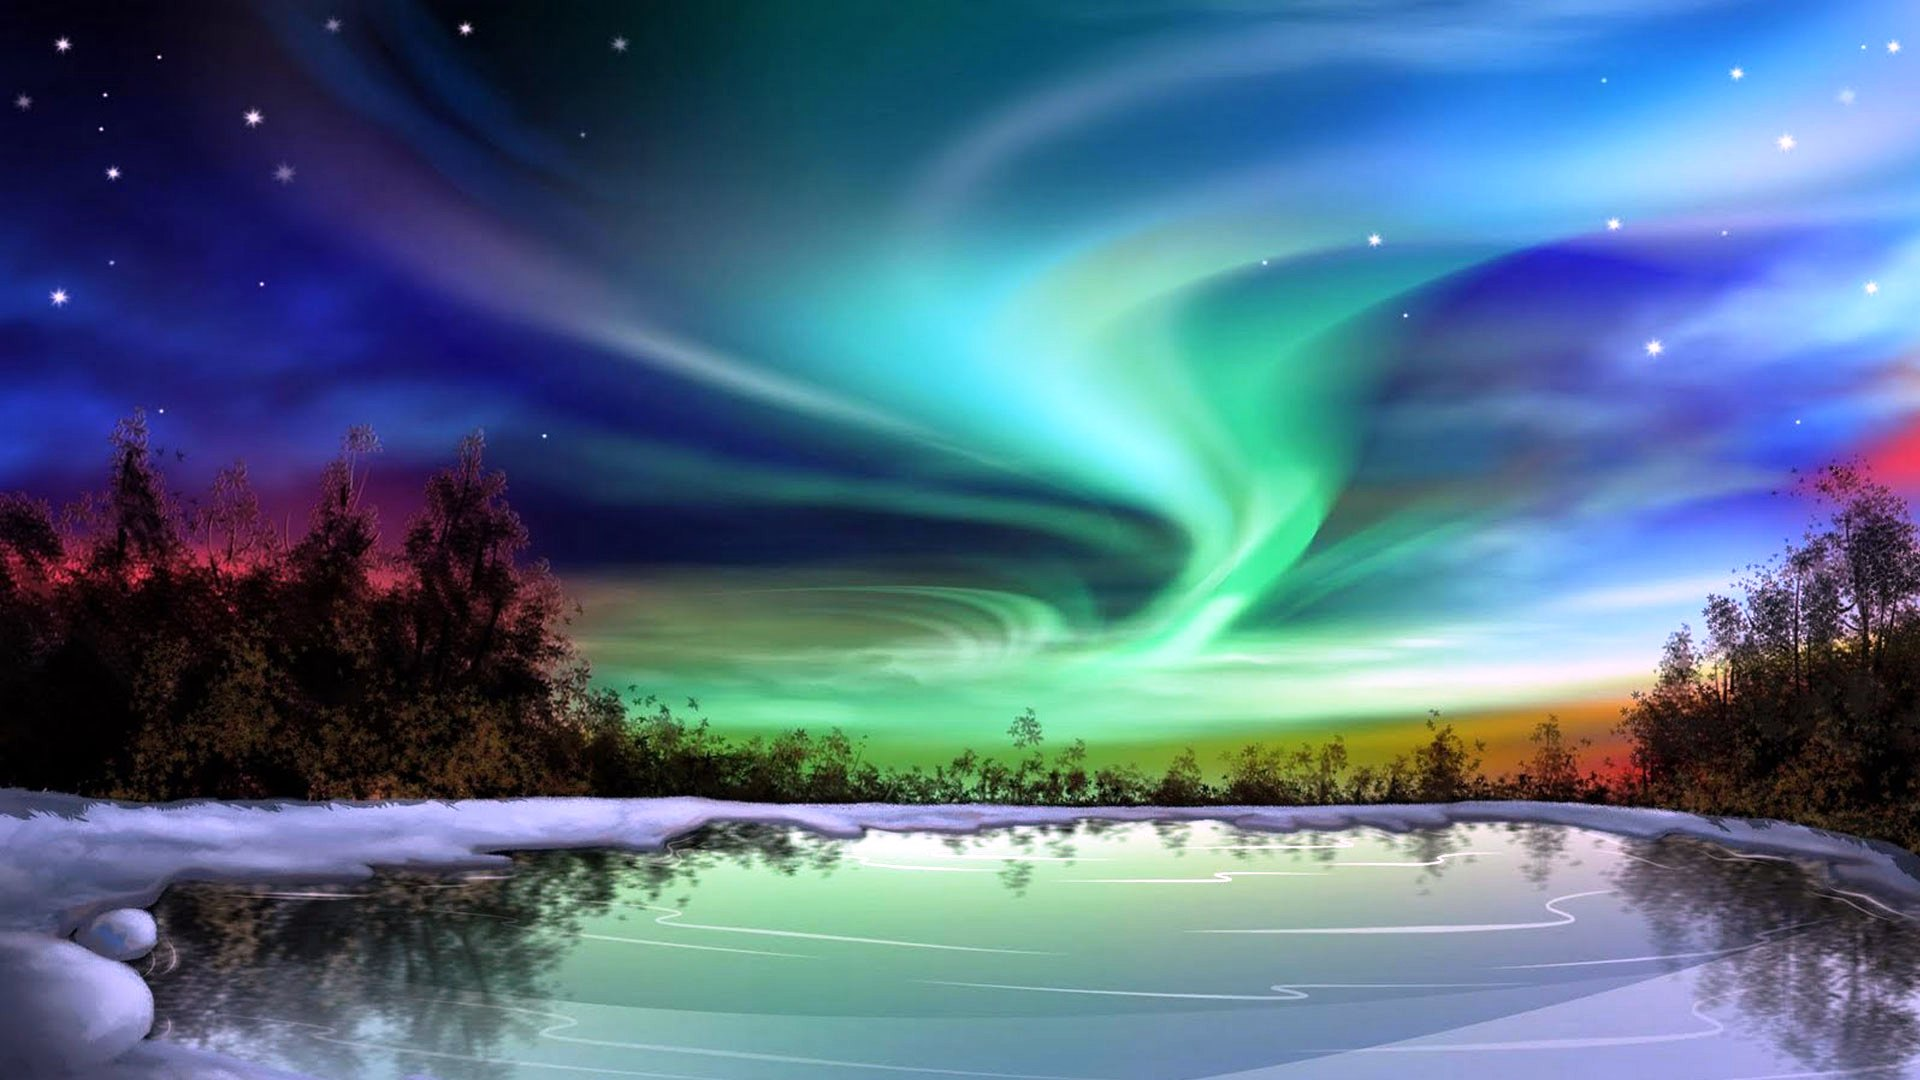 Northern Lights: The 7 Best Places to see Aurora Borealis in all its glory